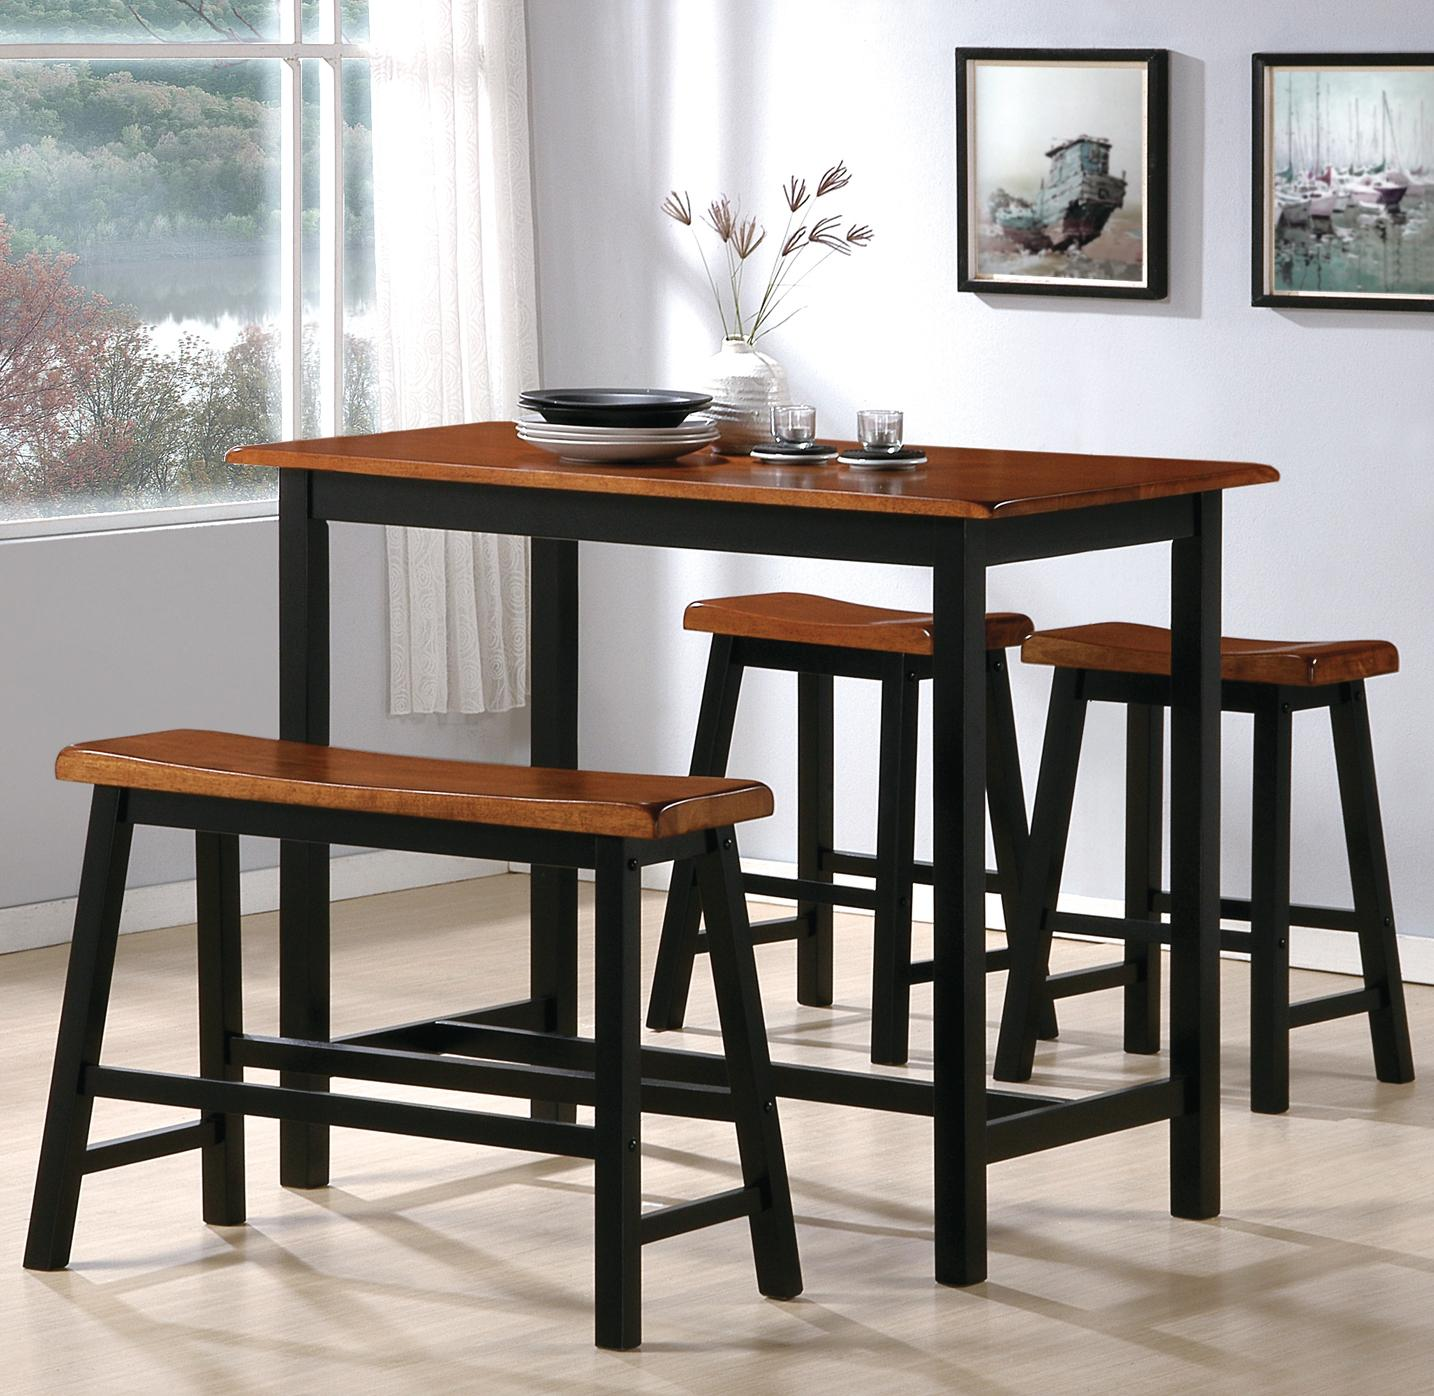 Crown mark tyler set piece counter height table